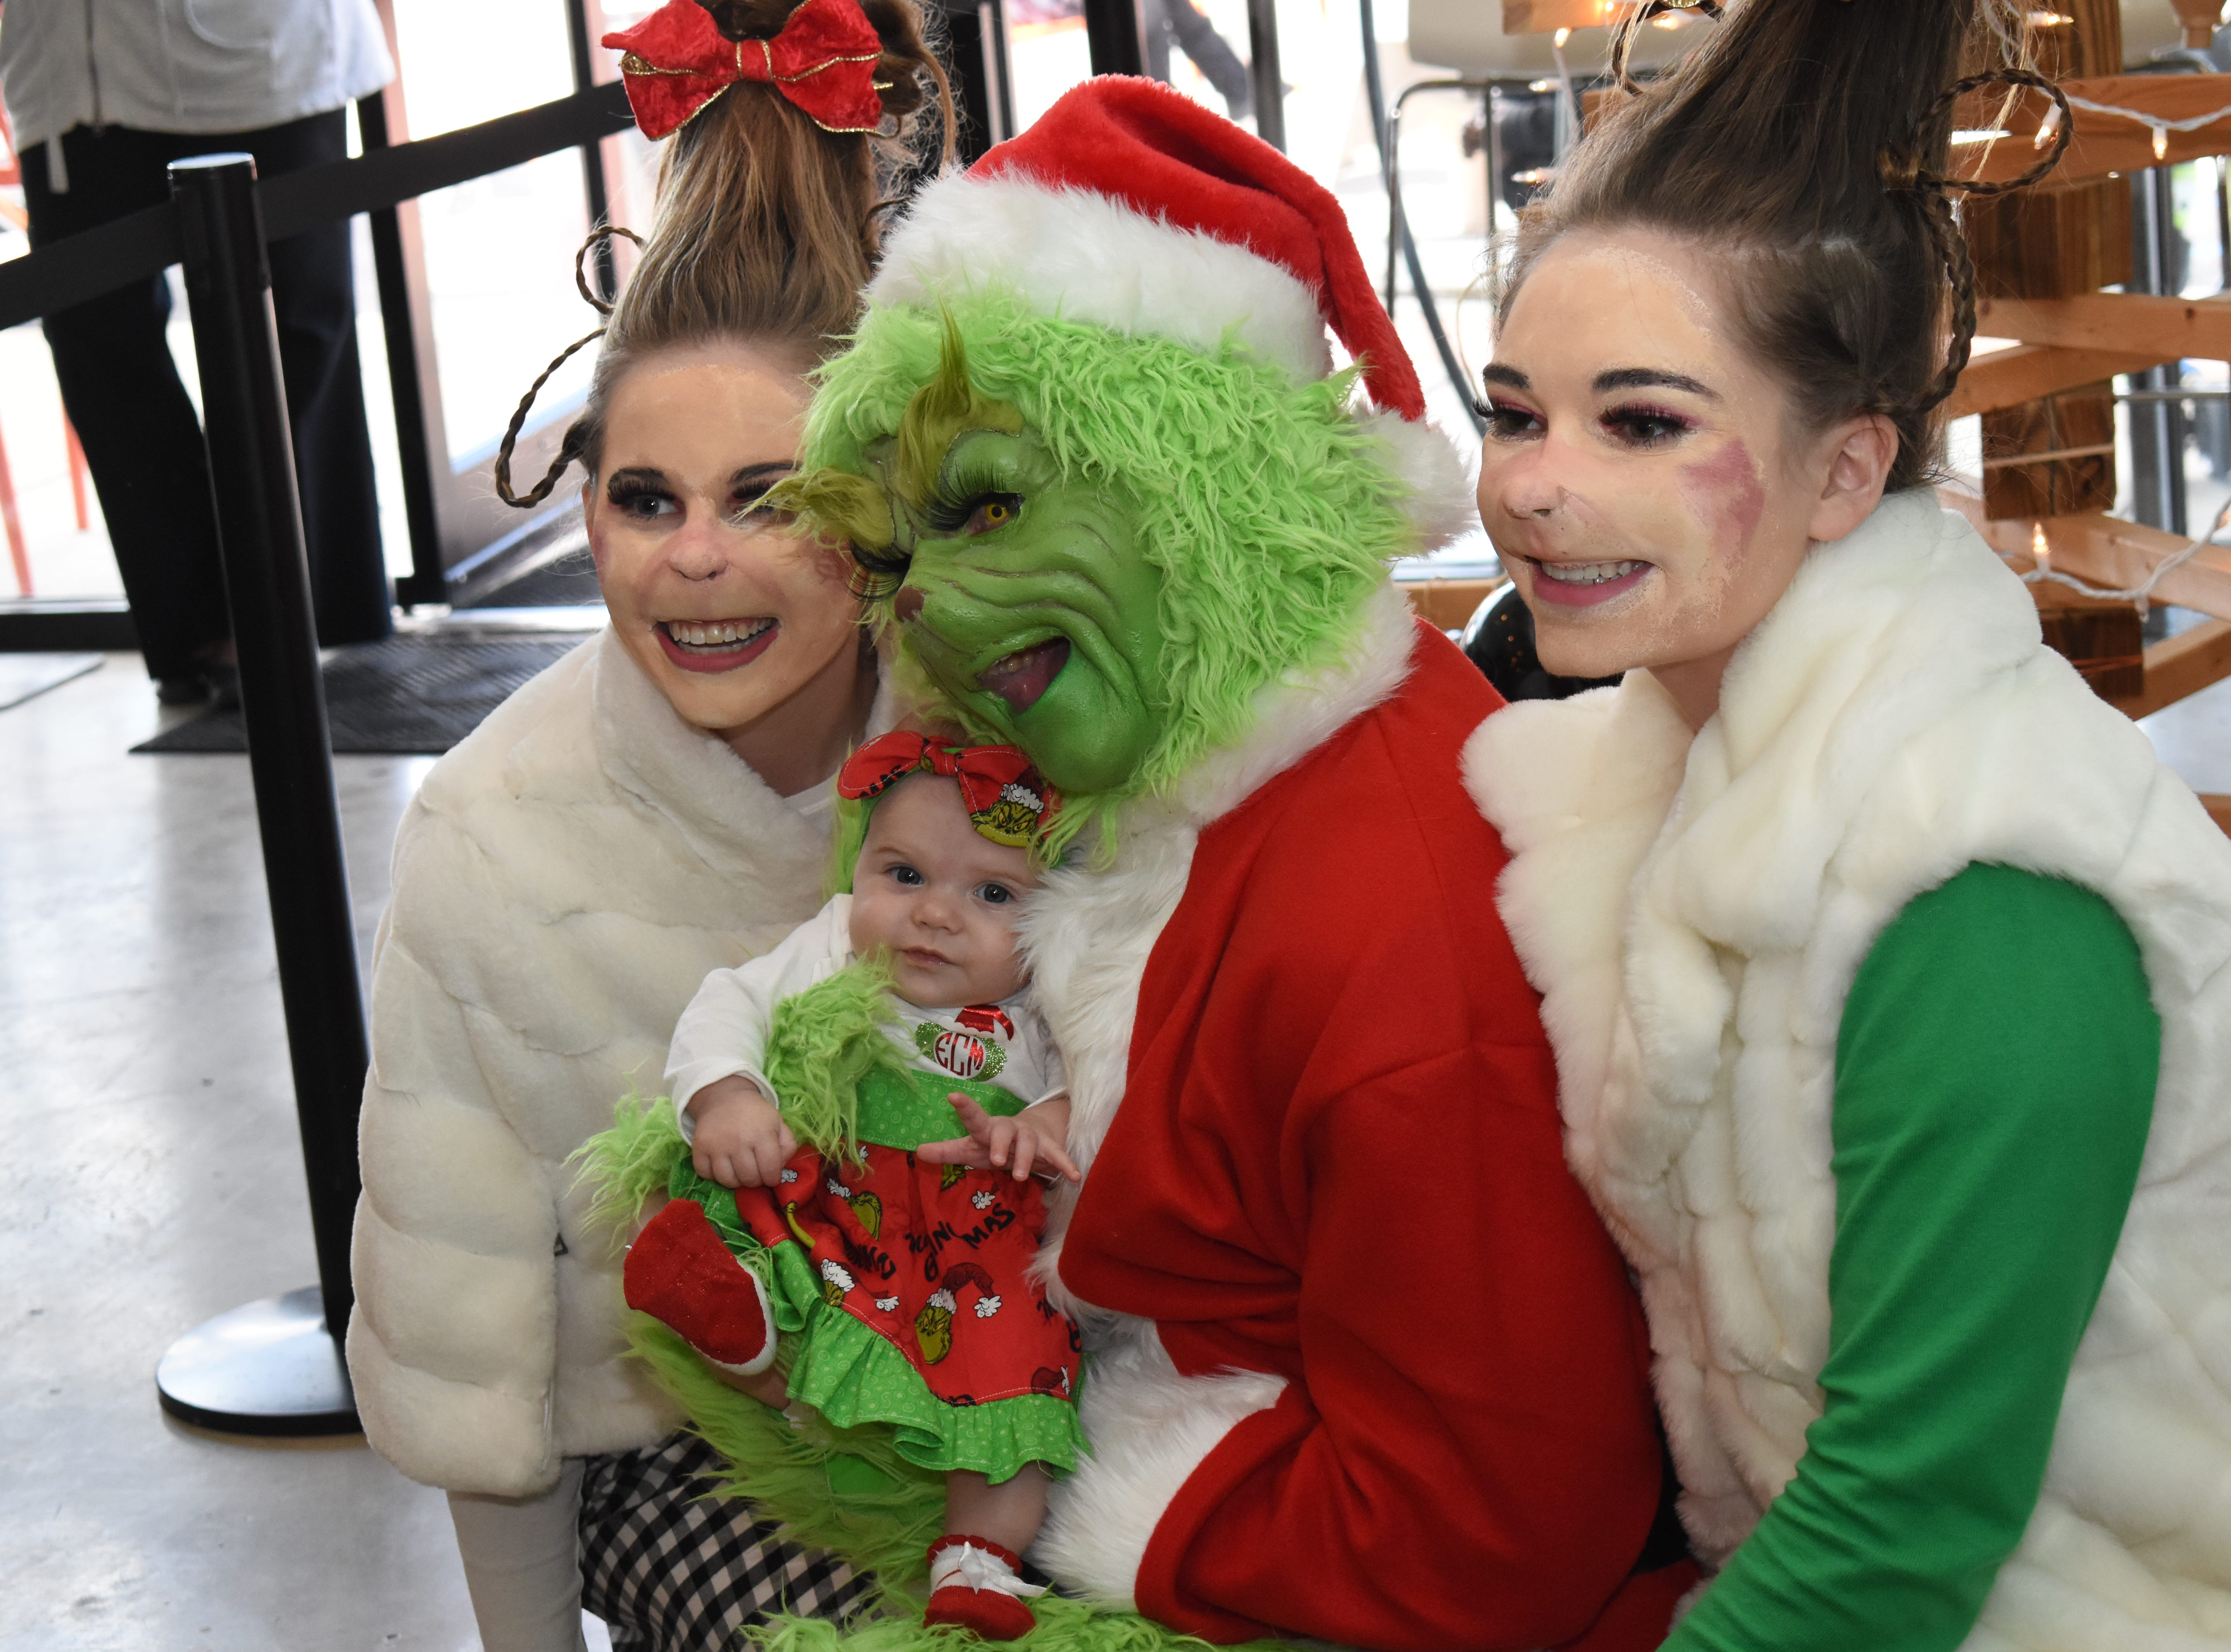 "The Grinch and two Whos, characters created by the late author Dr. Seuss, visited with patrons at Spoons Frozen Yogurt located at 2385 North MacArthur Drive Saturday, Dec. 22, 2018. The Grinch was portrayed by Matt Hughes of New Orleans and the Whos portrayed by Pineville High School student Camille Robinson and Alexandria Senior High School student Allie Ainsworth. Davin Ainsworth, owner of Spoons Frozen Yogurt along with his wife Melissa, said this is the first time they've had the Dr. Seuss characters. In the past other characters such as superheroes or Disney's ""Frozen"" characters have visited with patrons. Ainsworth said to keep up with their Facebook page, Spoons Froze Yogurt, or follow them on Instagram to find out what other characters will be visiting the shop."